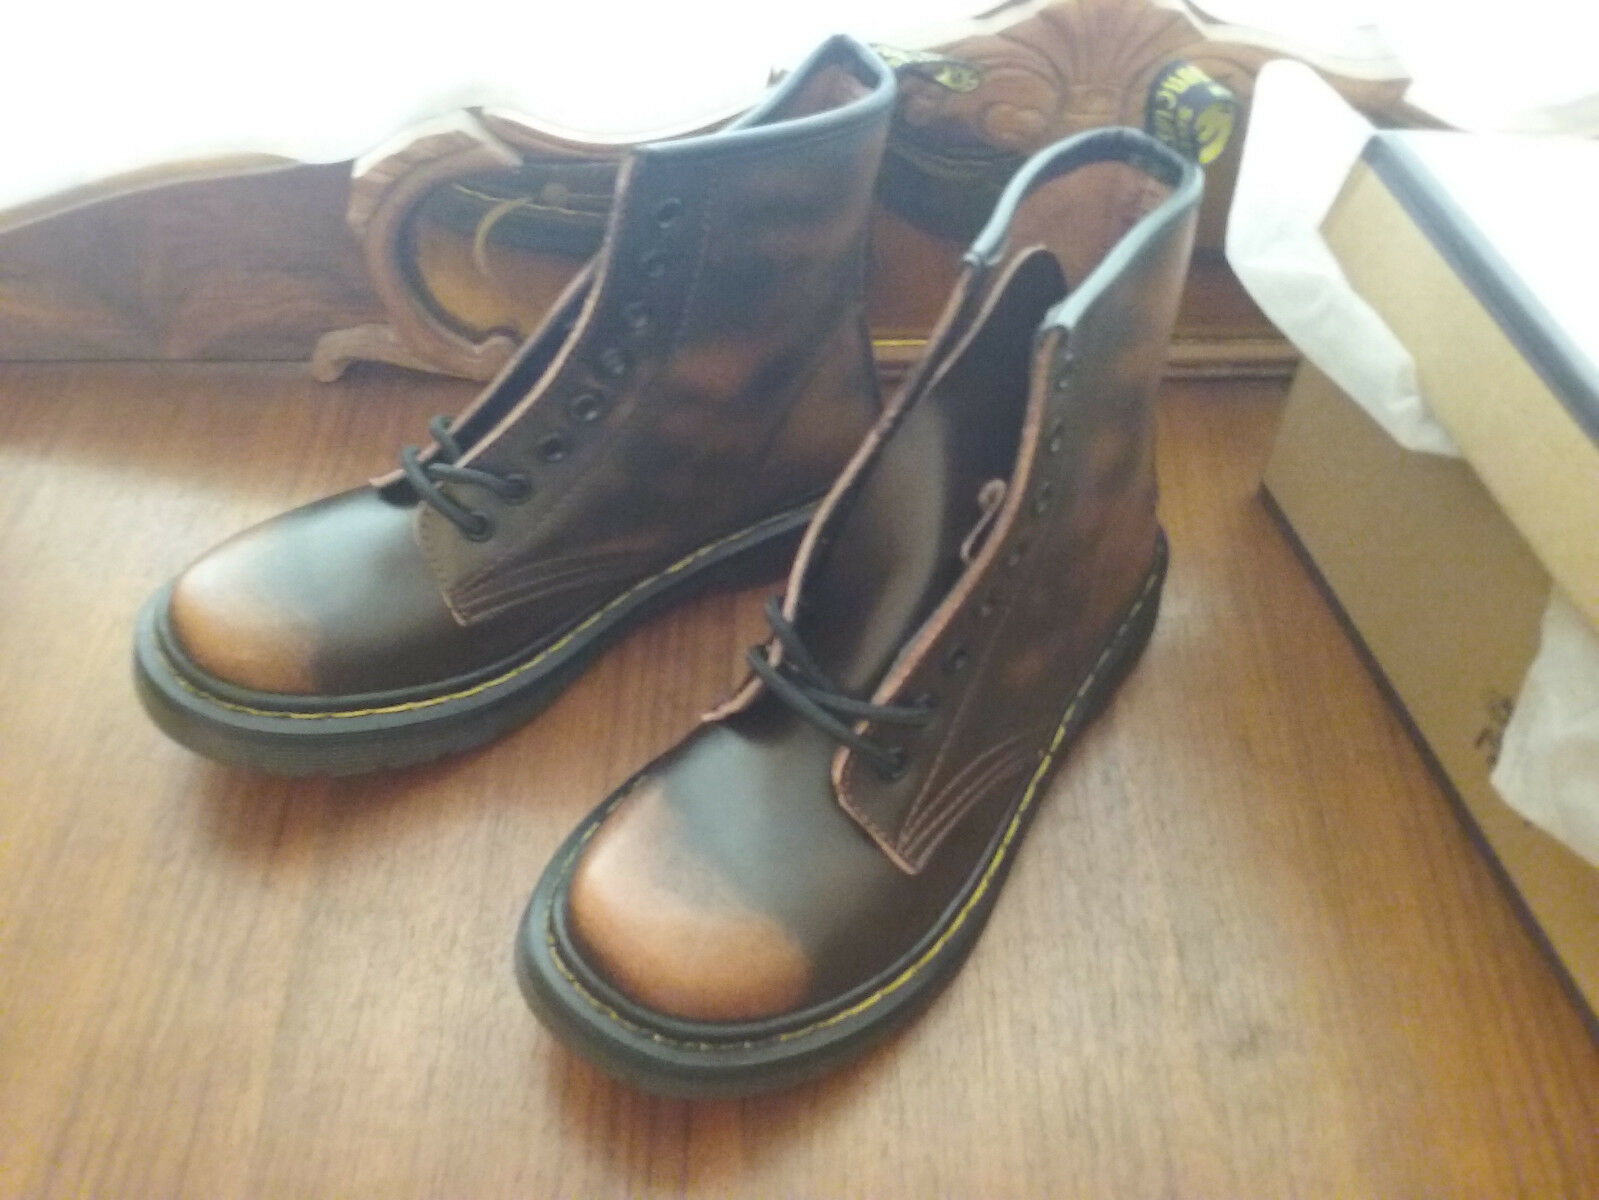 Boots, brown, women's 7.5, BRAND NEW IN BOX, FREE FREE FREE SHIP a8b1a8